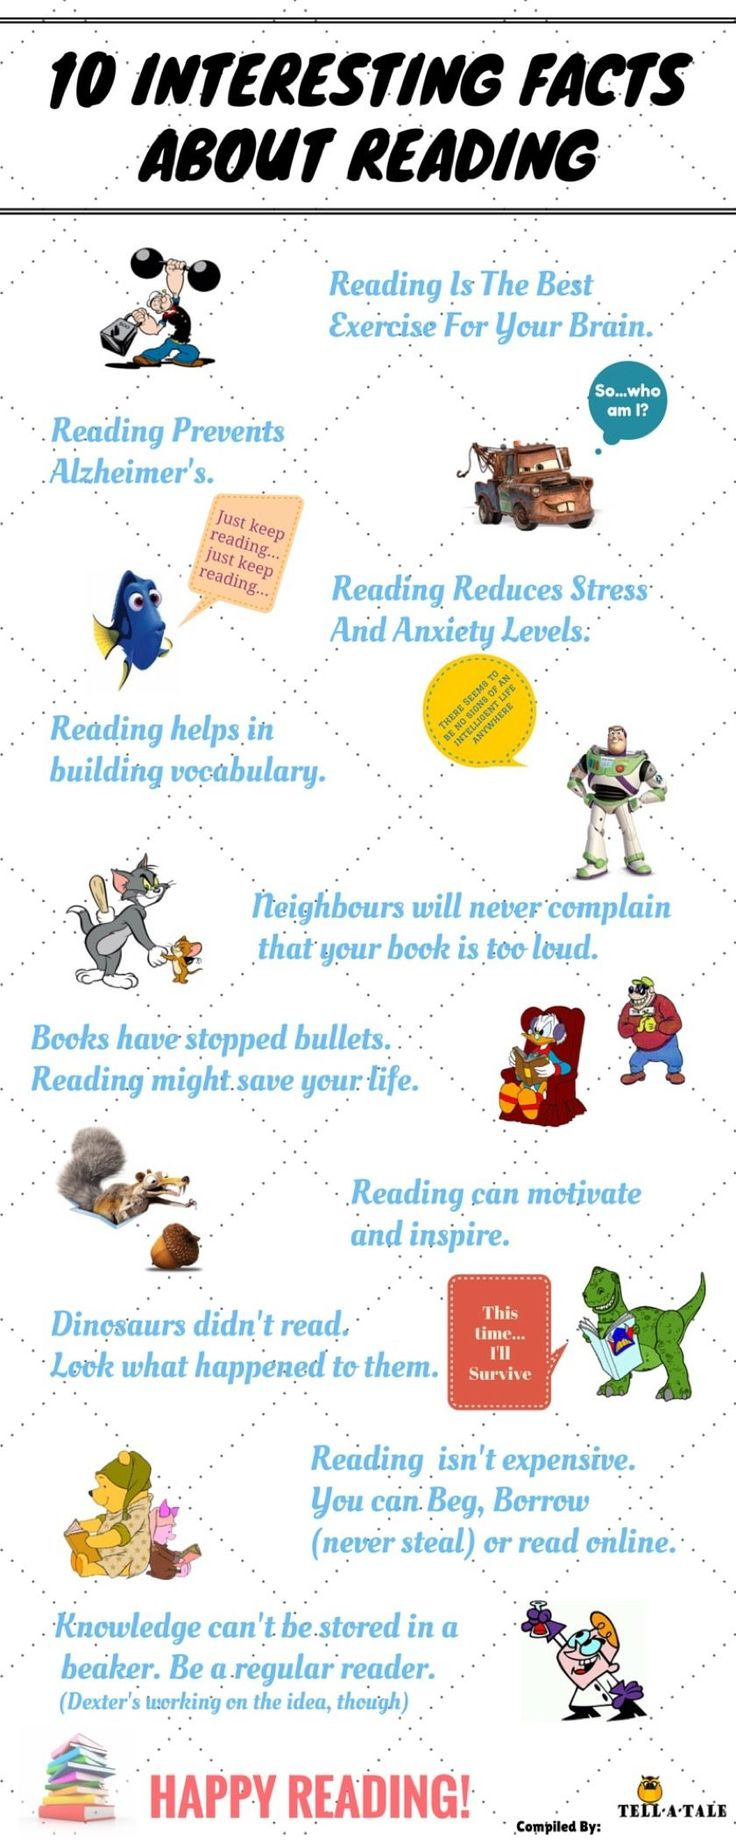 10 interesting facts about reading (infographic) FRIENDLY STAFF PUBLISHED ON JUN 16, 2016